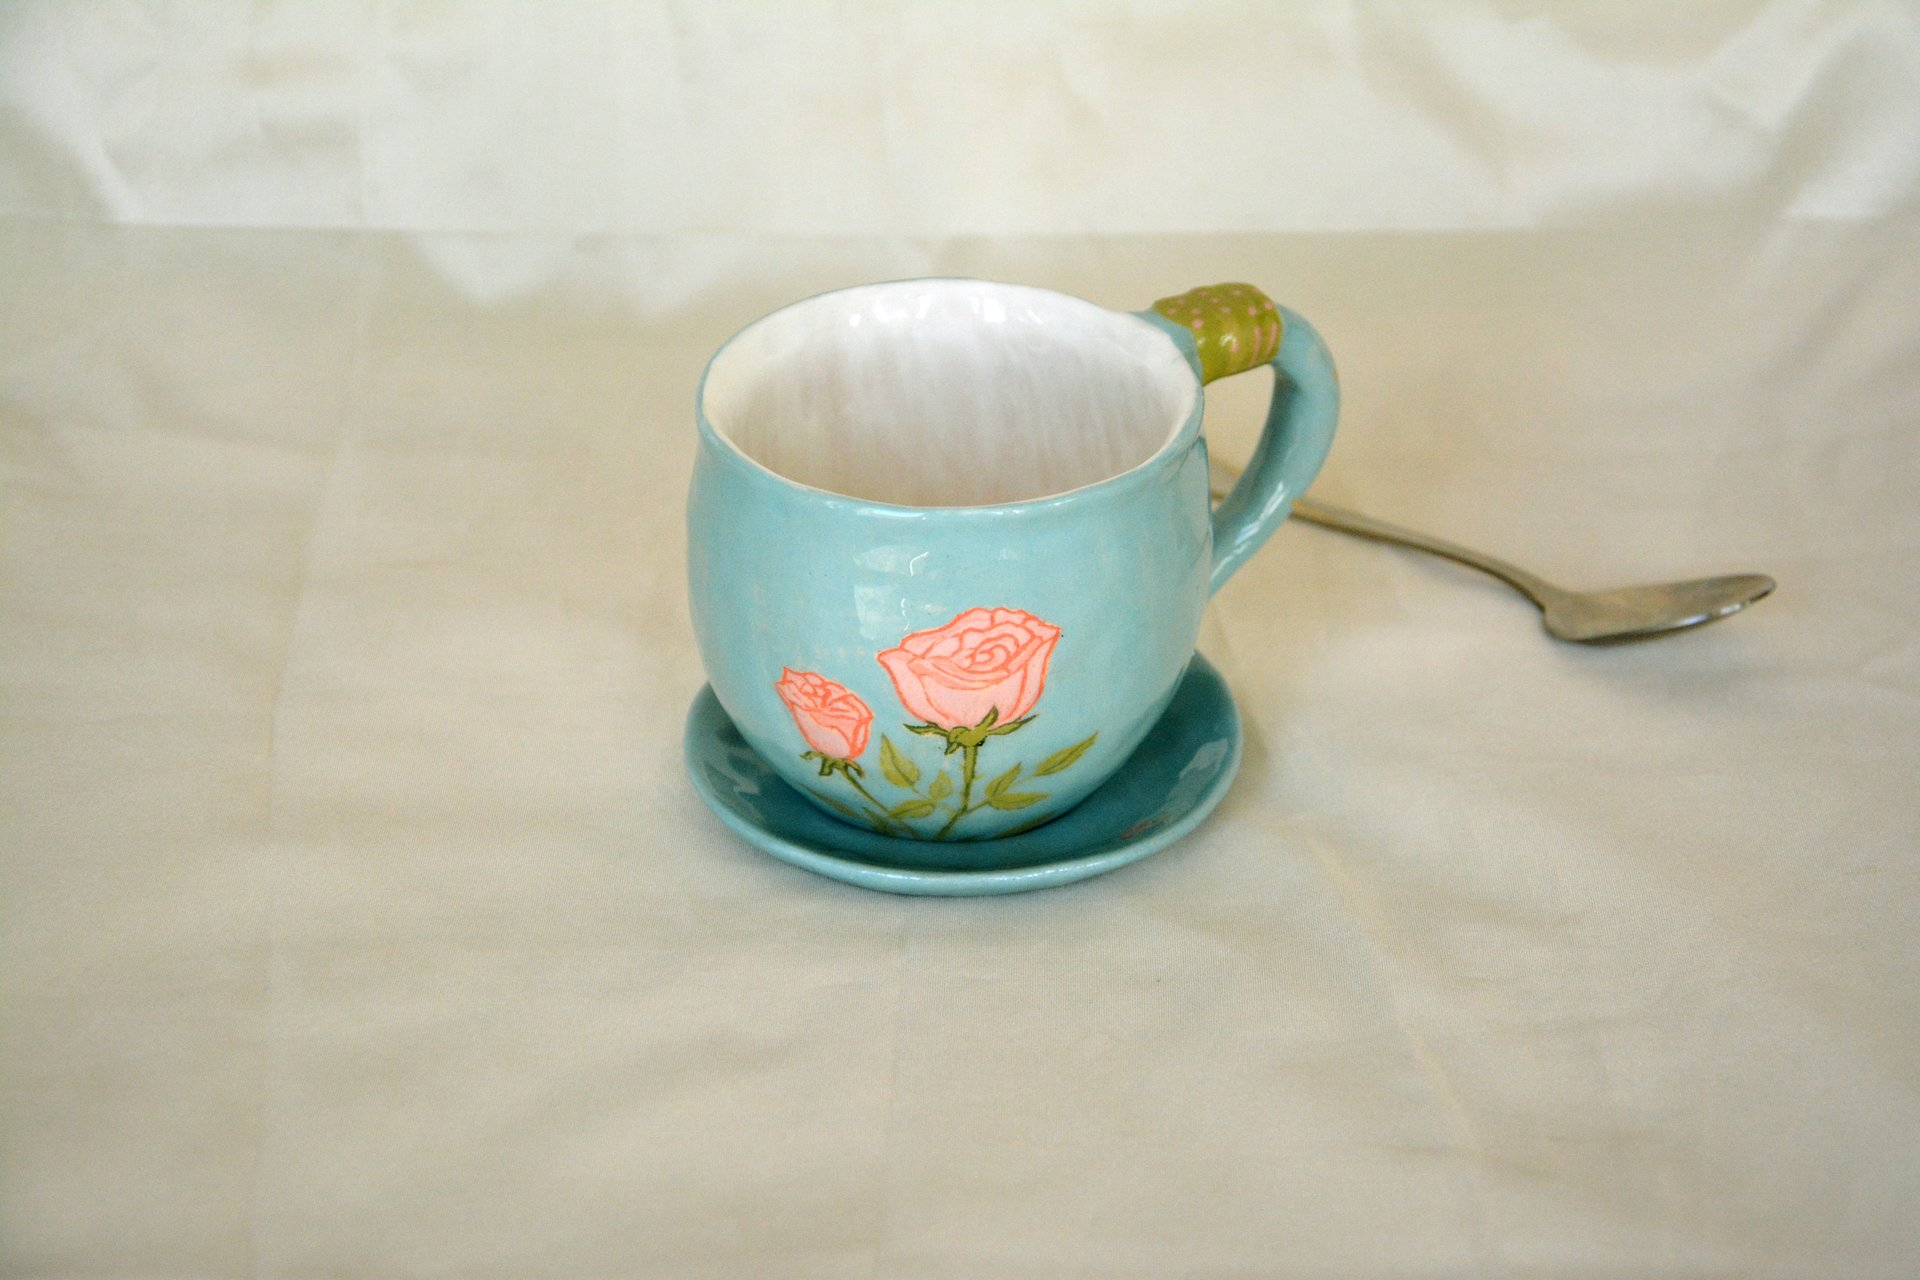 Blue cup with a picture of Sleeping bunny - Cups, glasses, mugs, height - 7 cm, volume - 250 ml, photo 2 of 3.